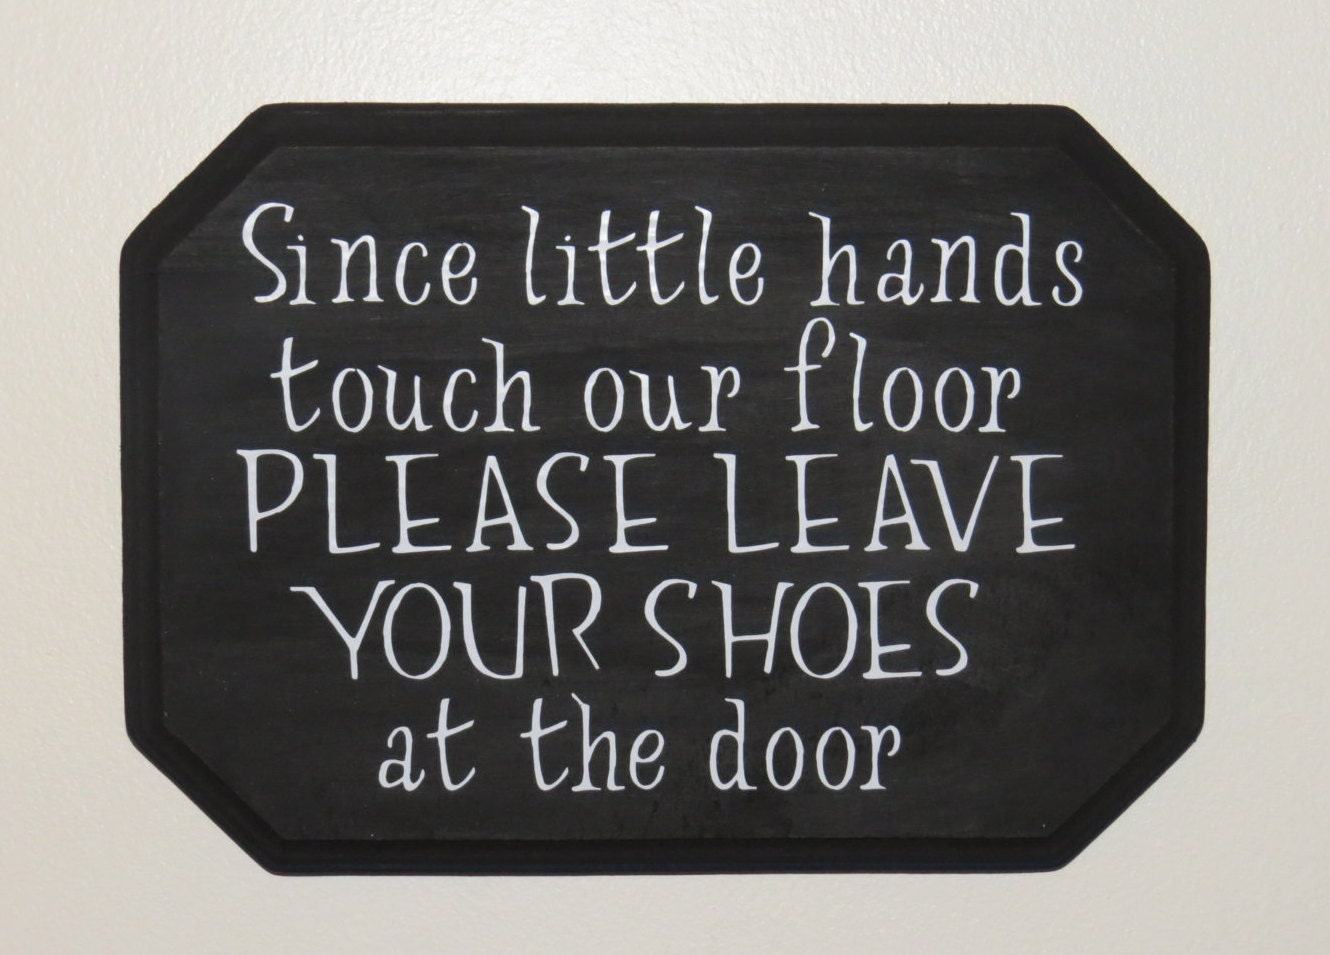 Shoes Off At The Door Since Little Hands Touch Our Floor Please Leave Your Shoes At